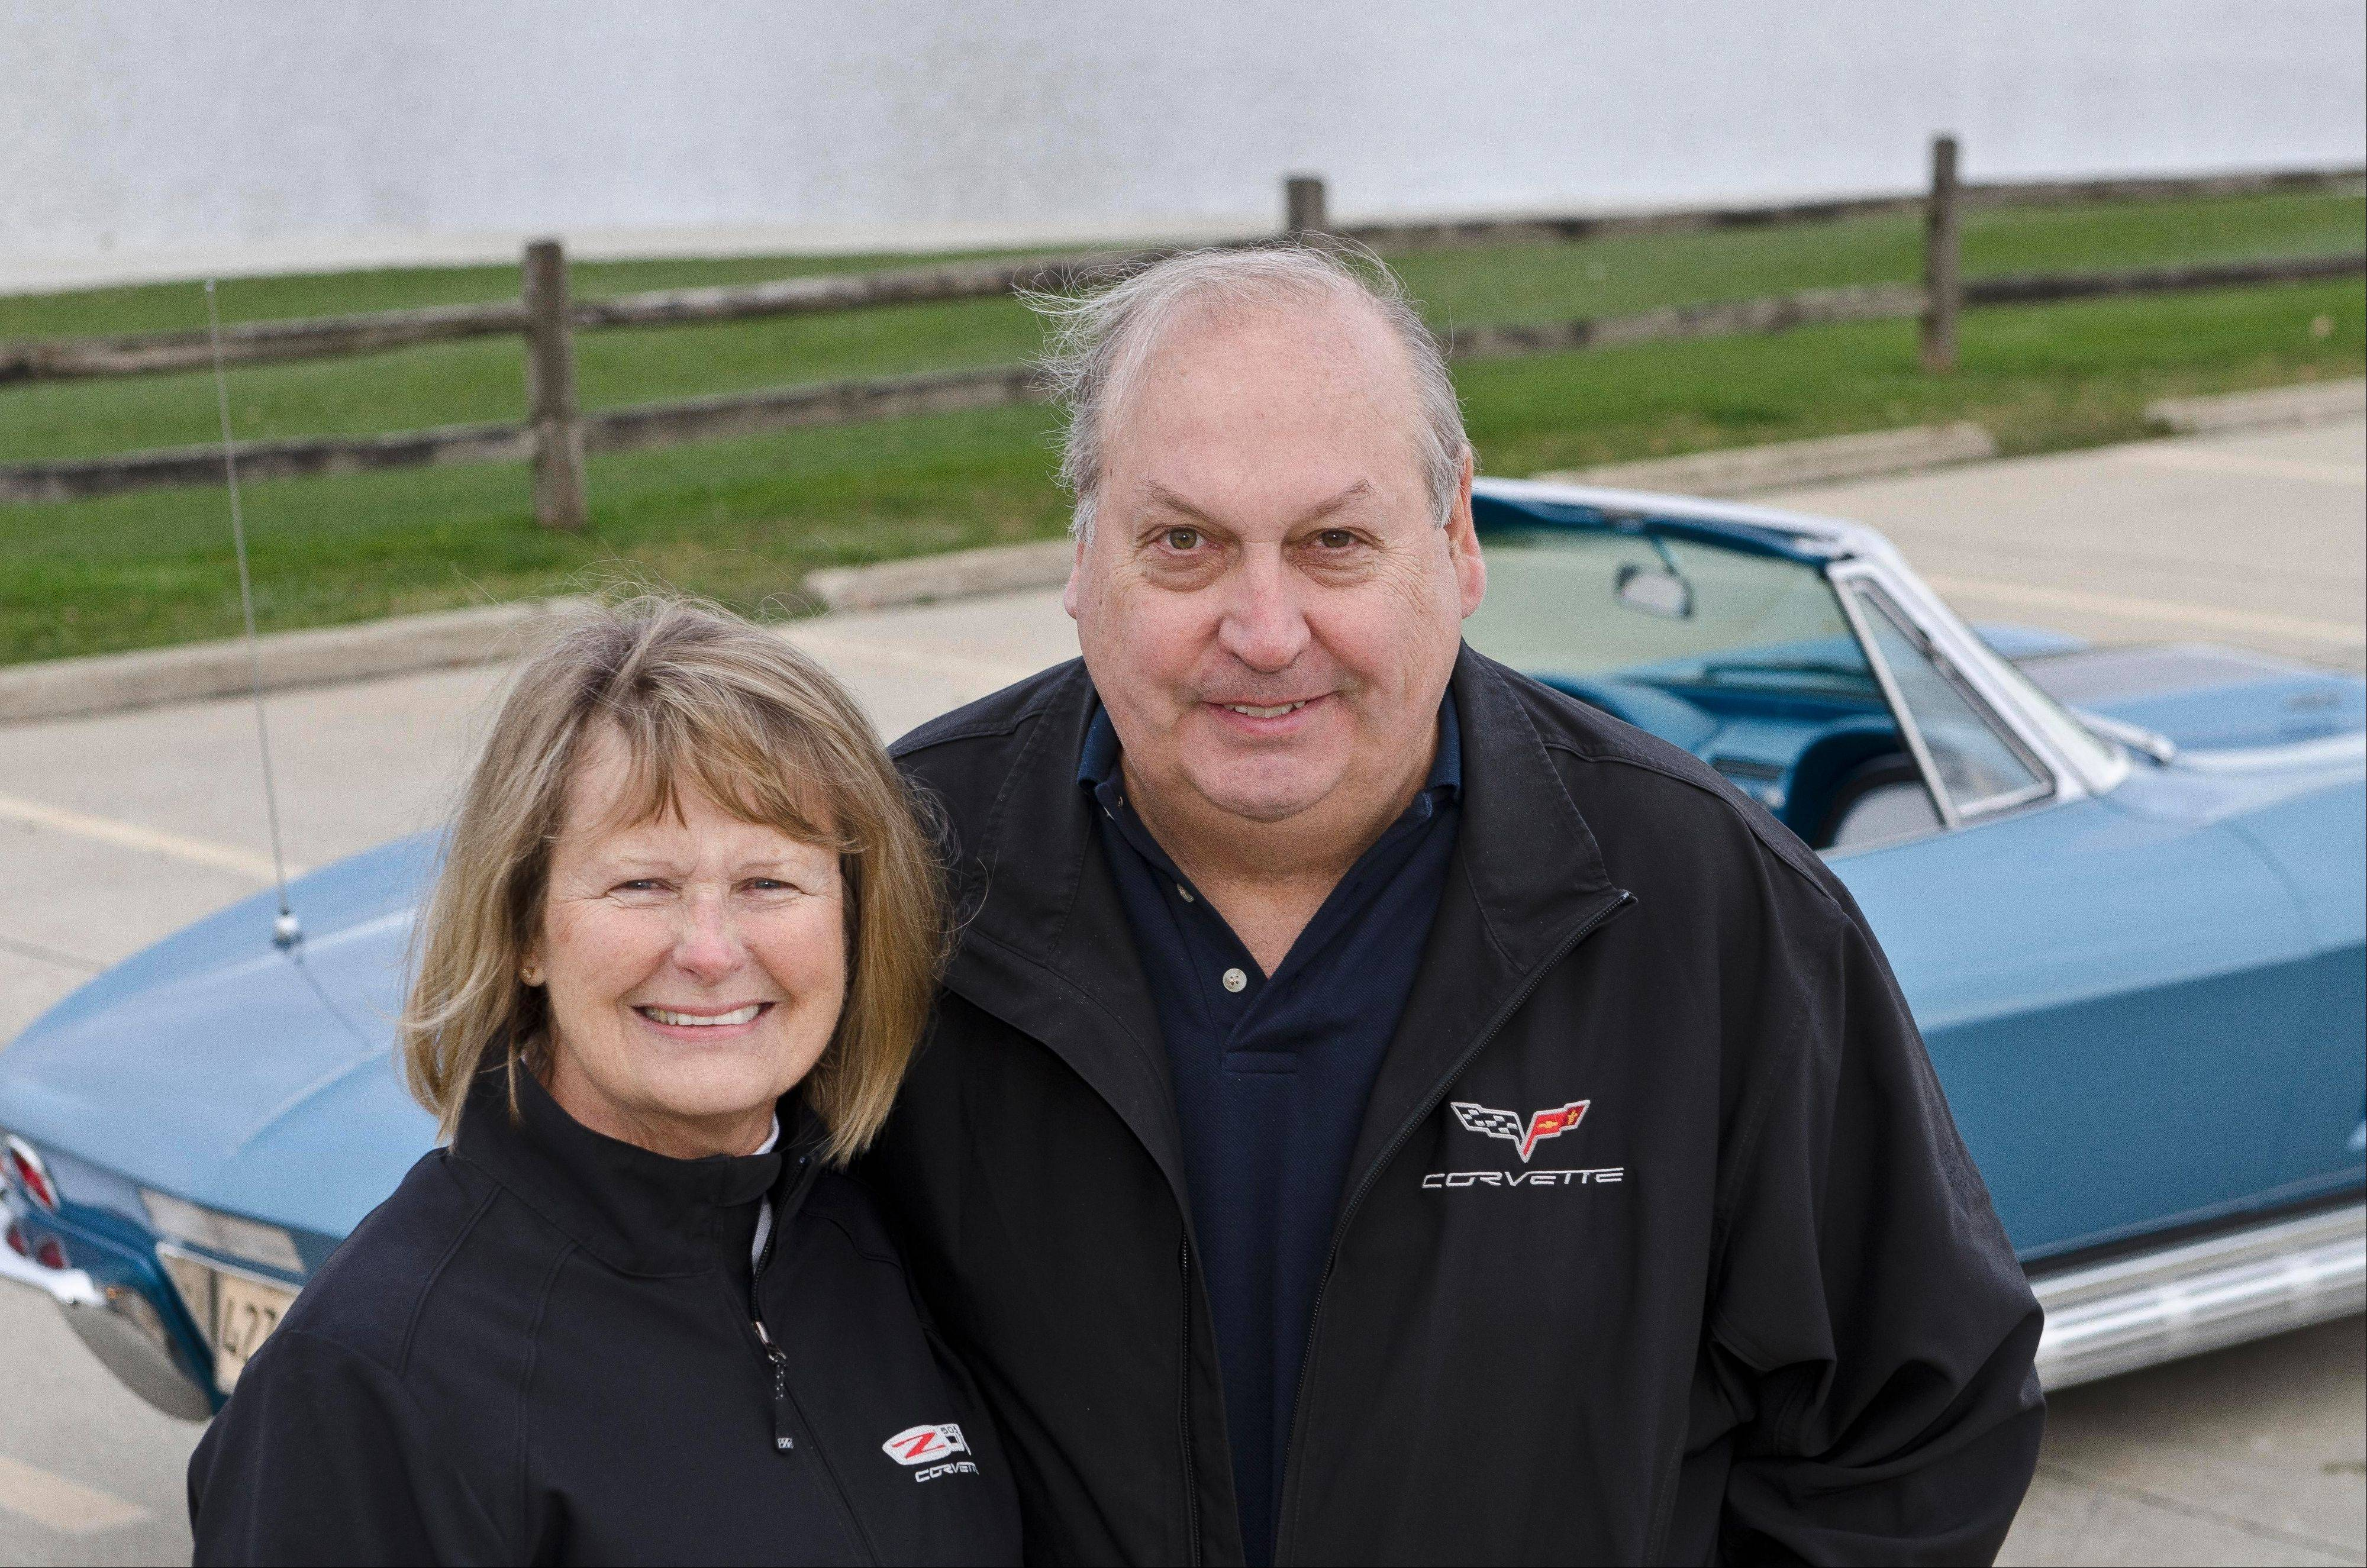 Corvette enthusiasts Jerry and Felicia Mulick of Northfield enjoy attending area cruise nights.